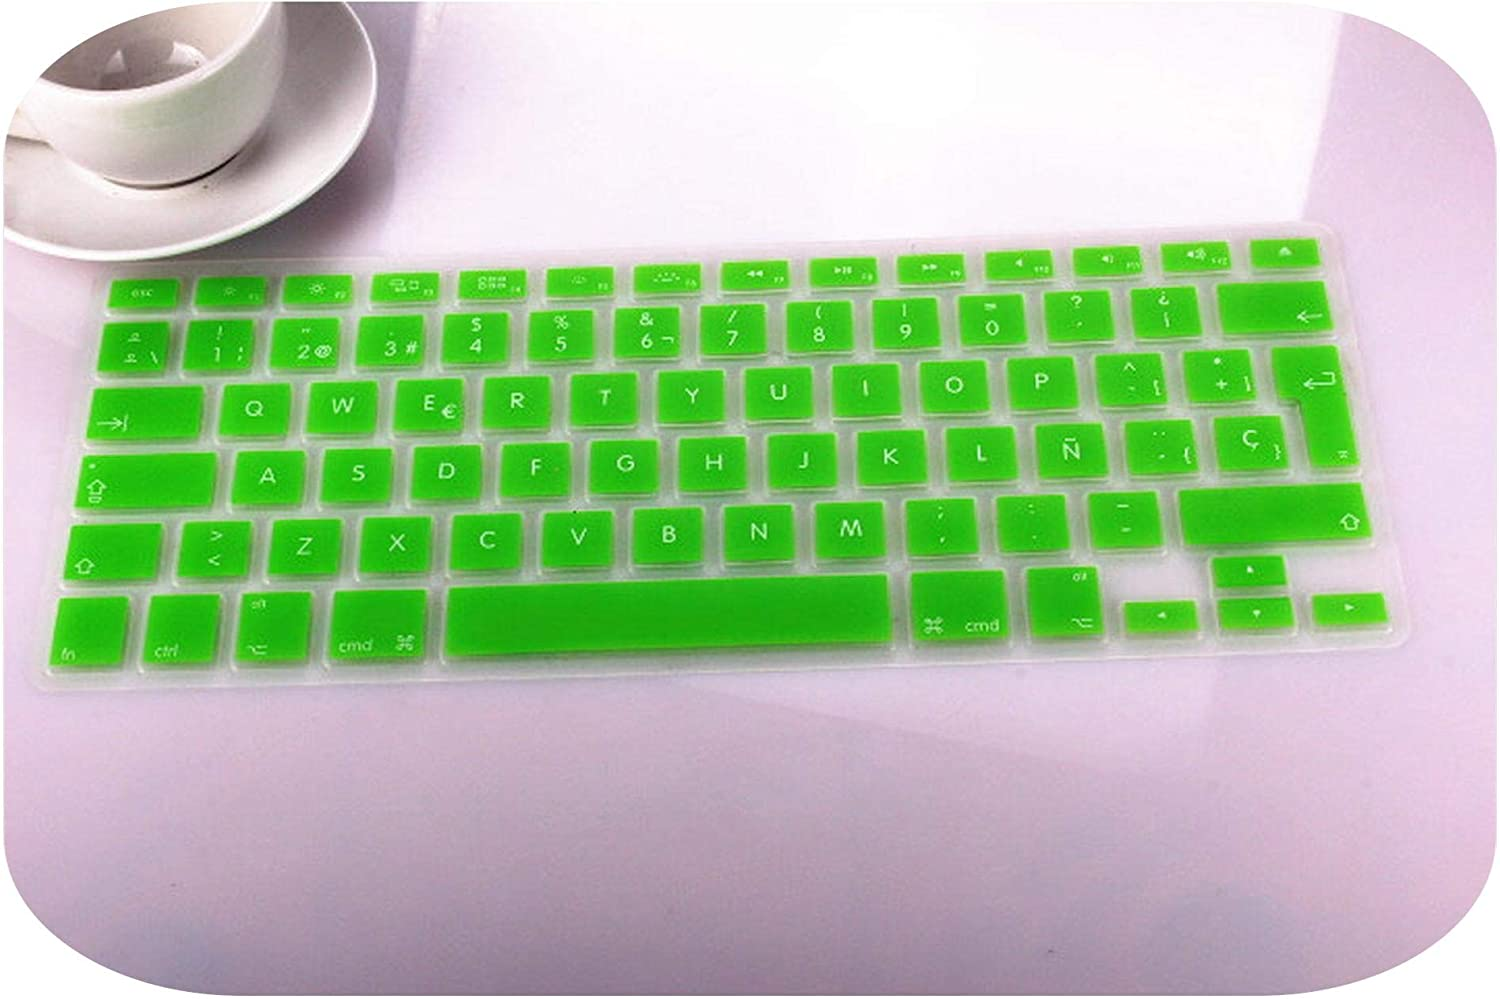 Film Pour Clavier for Mac MacBook Pro 13 15 17 Air Retina 13 Euro EU Spainish Translucent Keyboard Protector Cover for Mac Book-Yellow 2Pcs